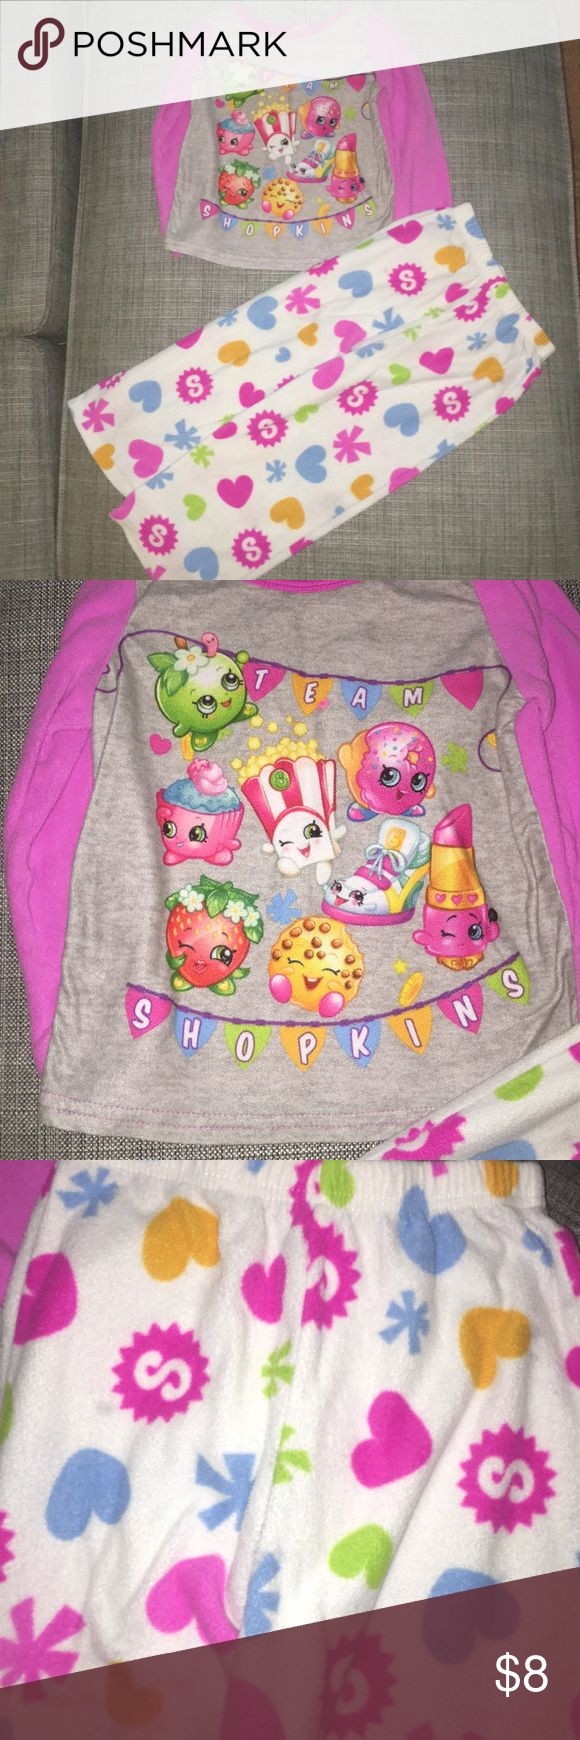 Shopkins fleece pajamas tag has been cut from the top but these are girls size 6. fleece top & bottoms, really soft! shopkins love! Shopkins Pajamas Pajama Sets